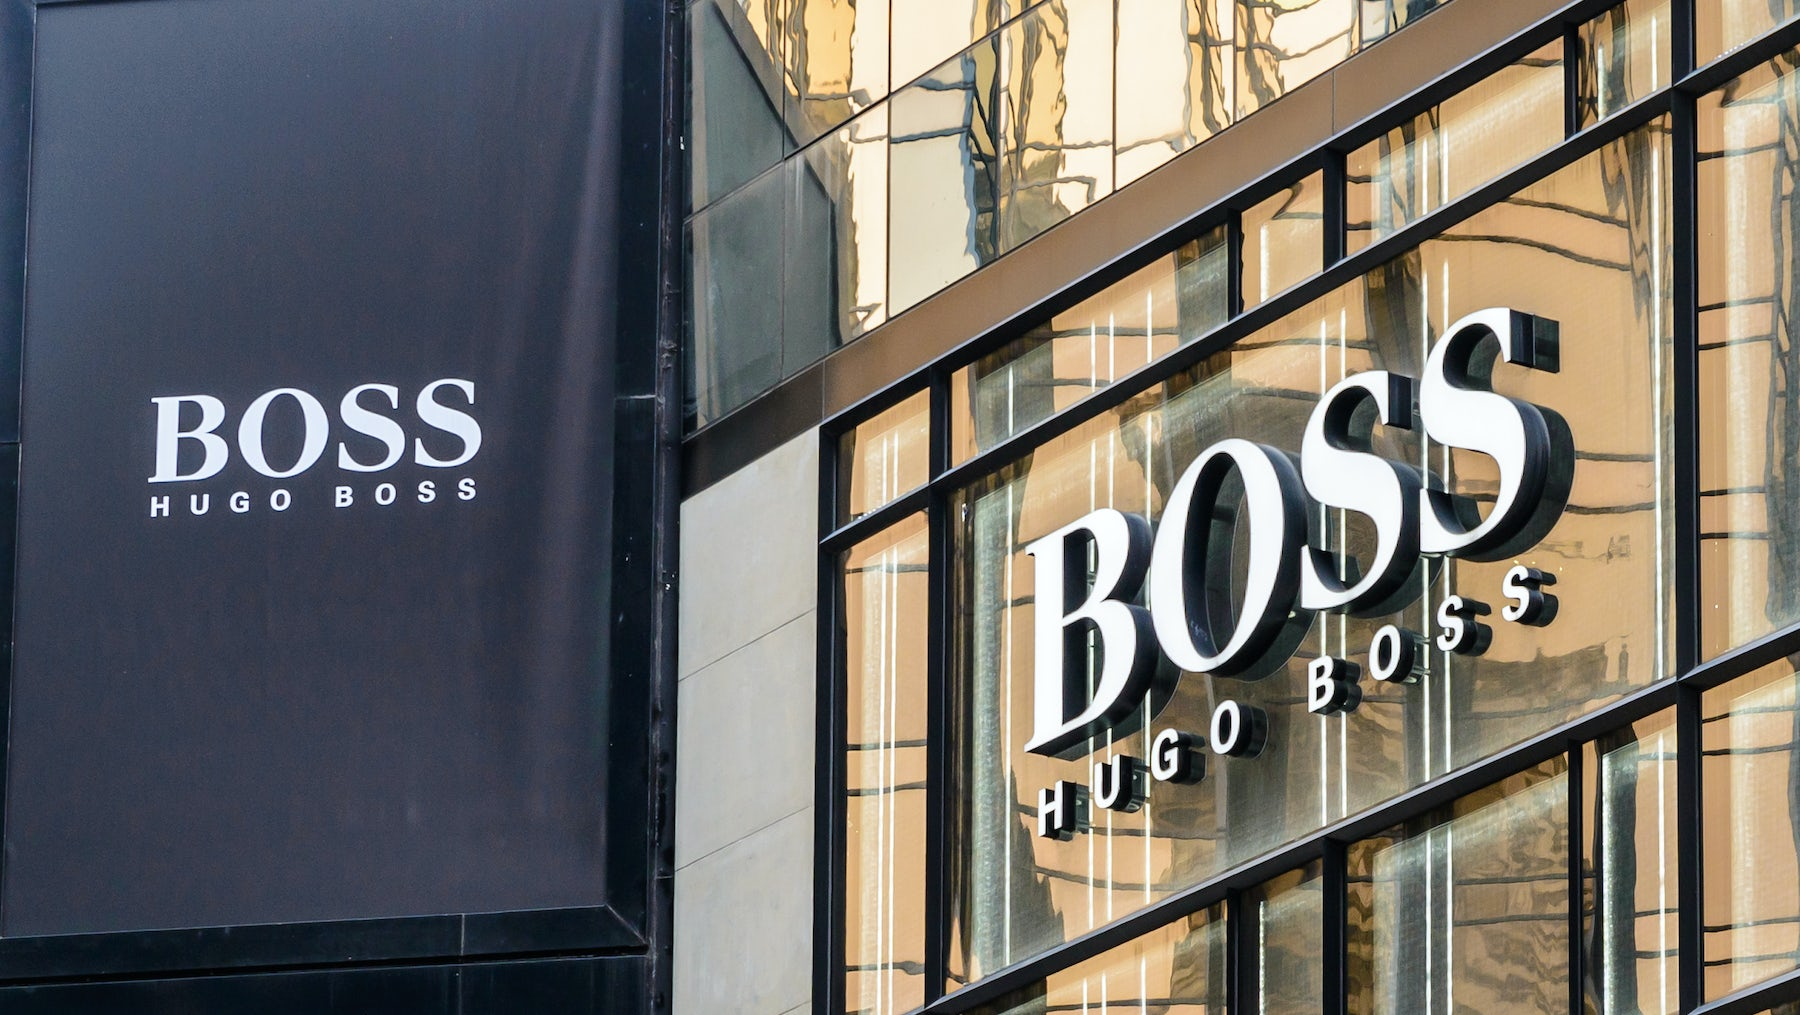 Hugo Boss store | Source: Shutterstock